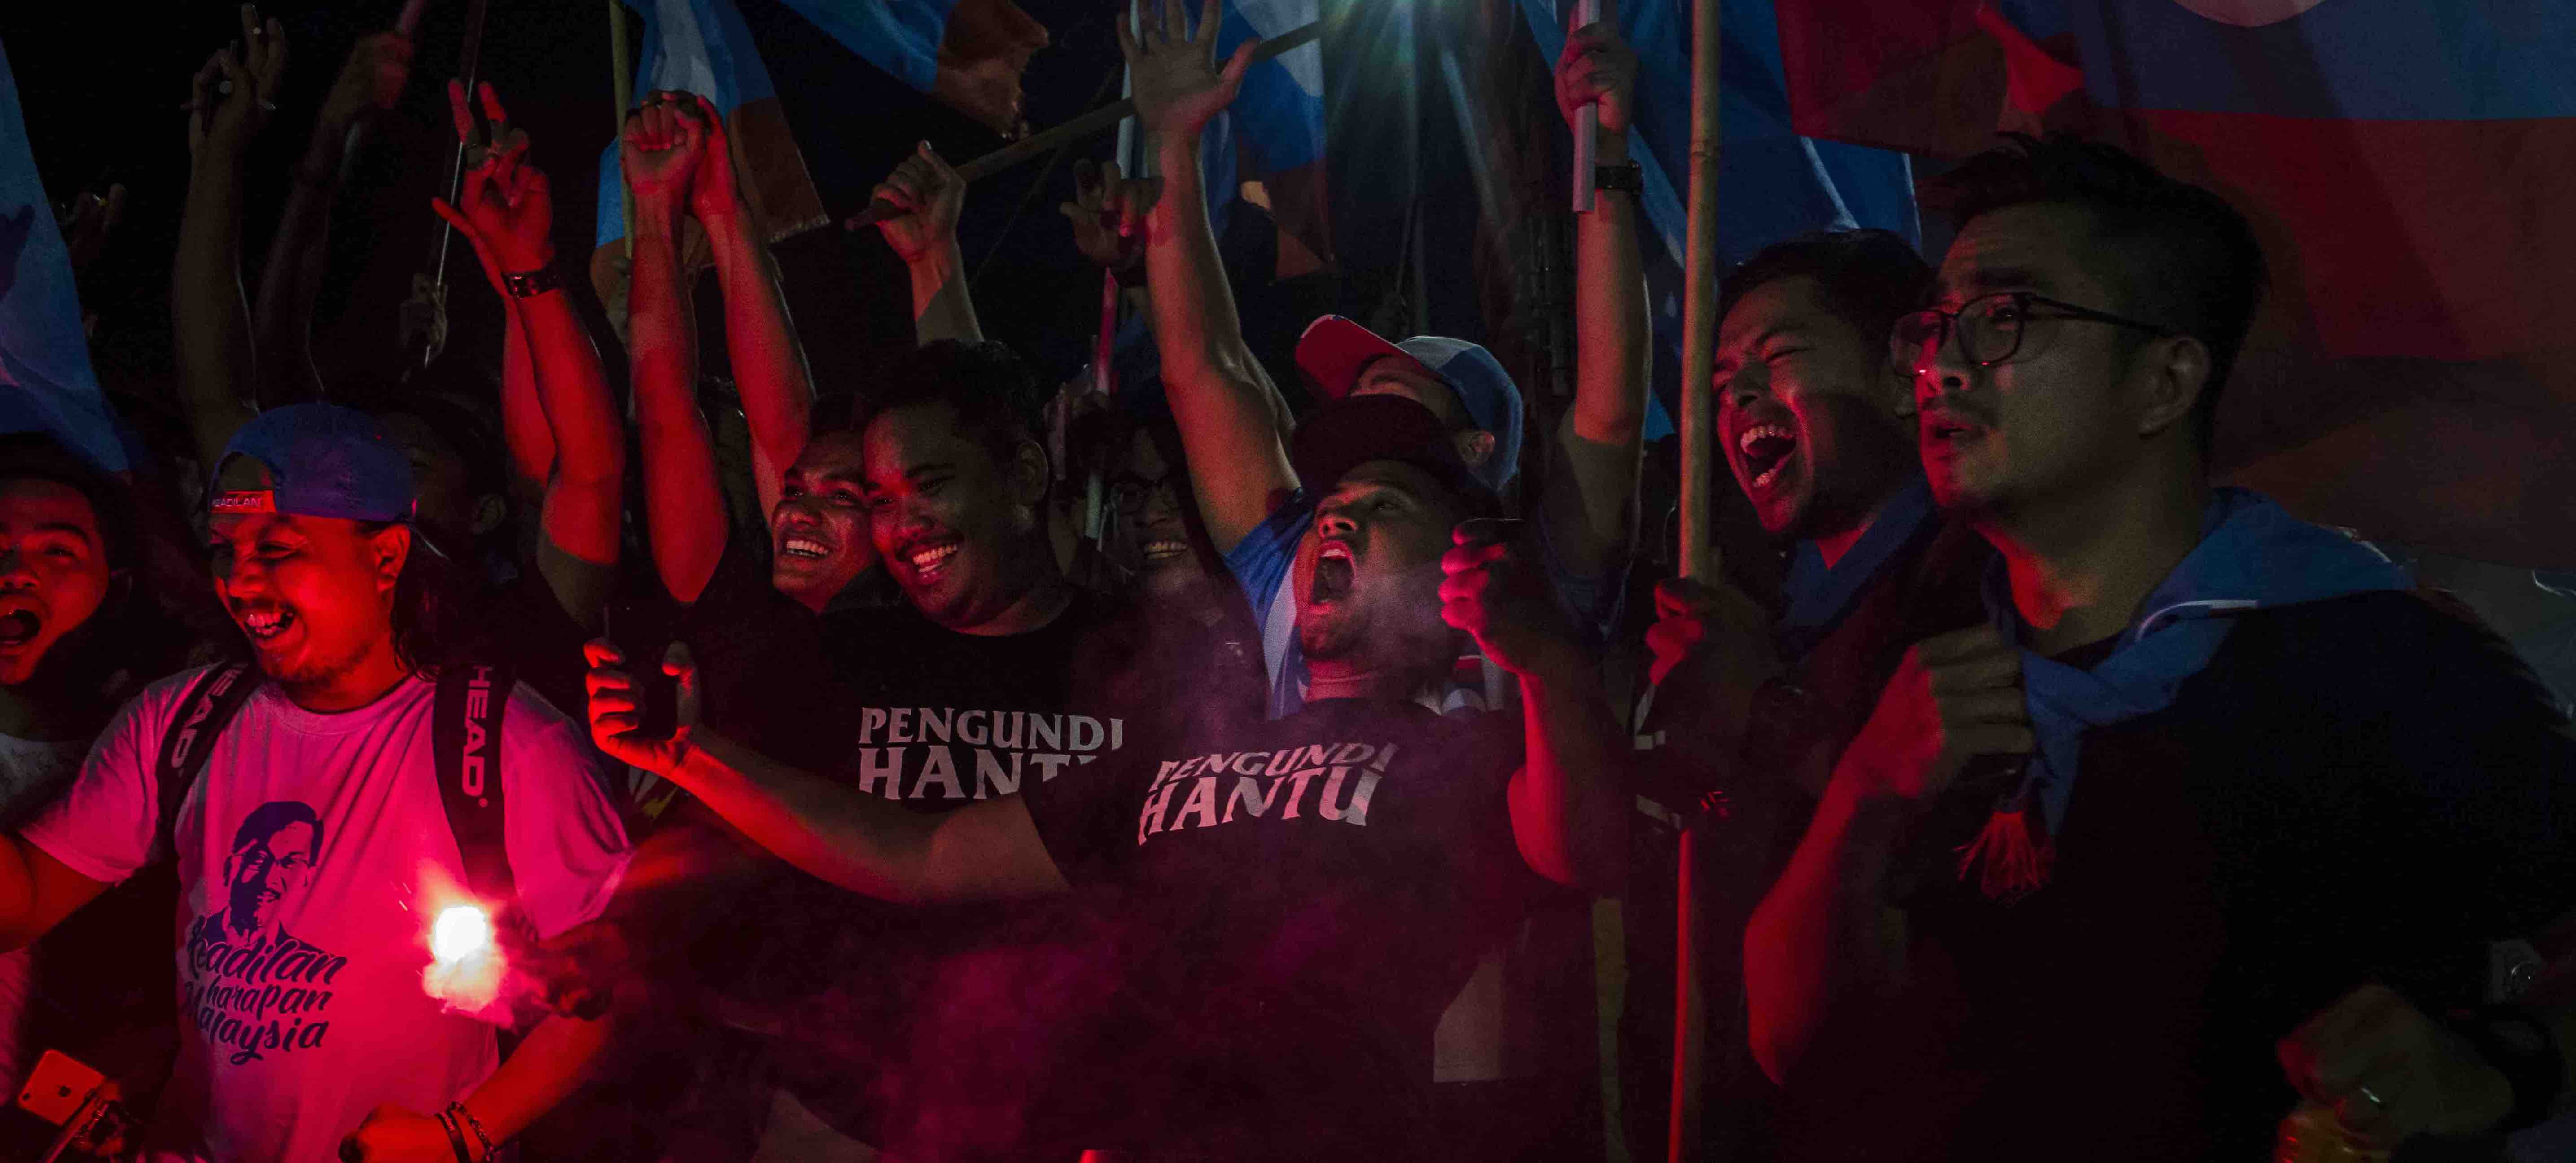 Supporters of Mahathir Mohamad celebrate the election result in Kuala Lumpur (Photo: Ulet Ifansasti/Getty)